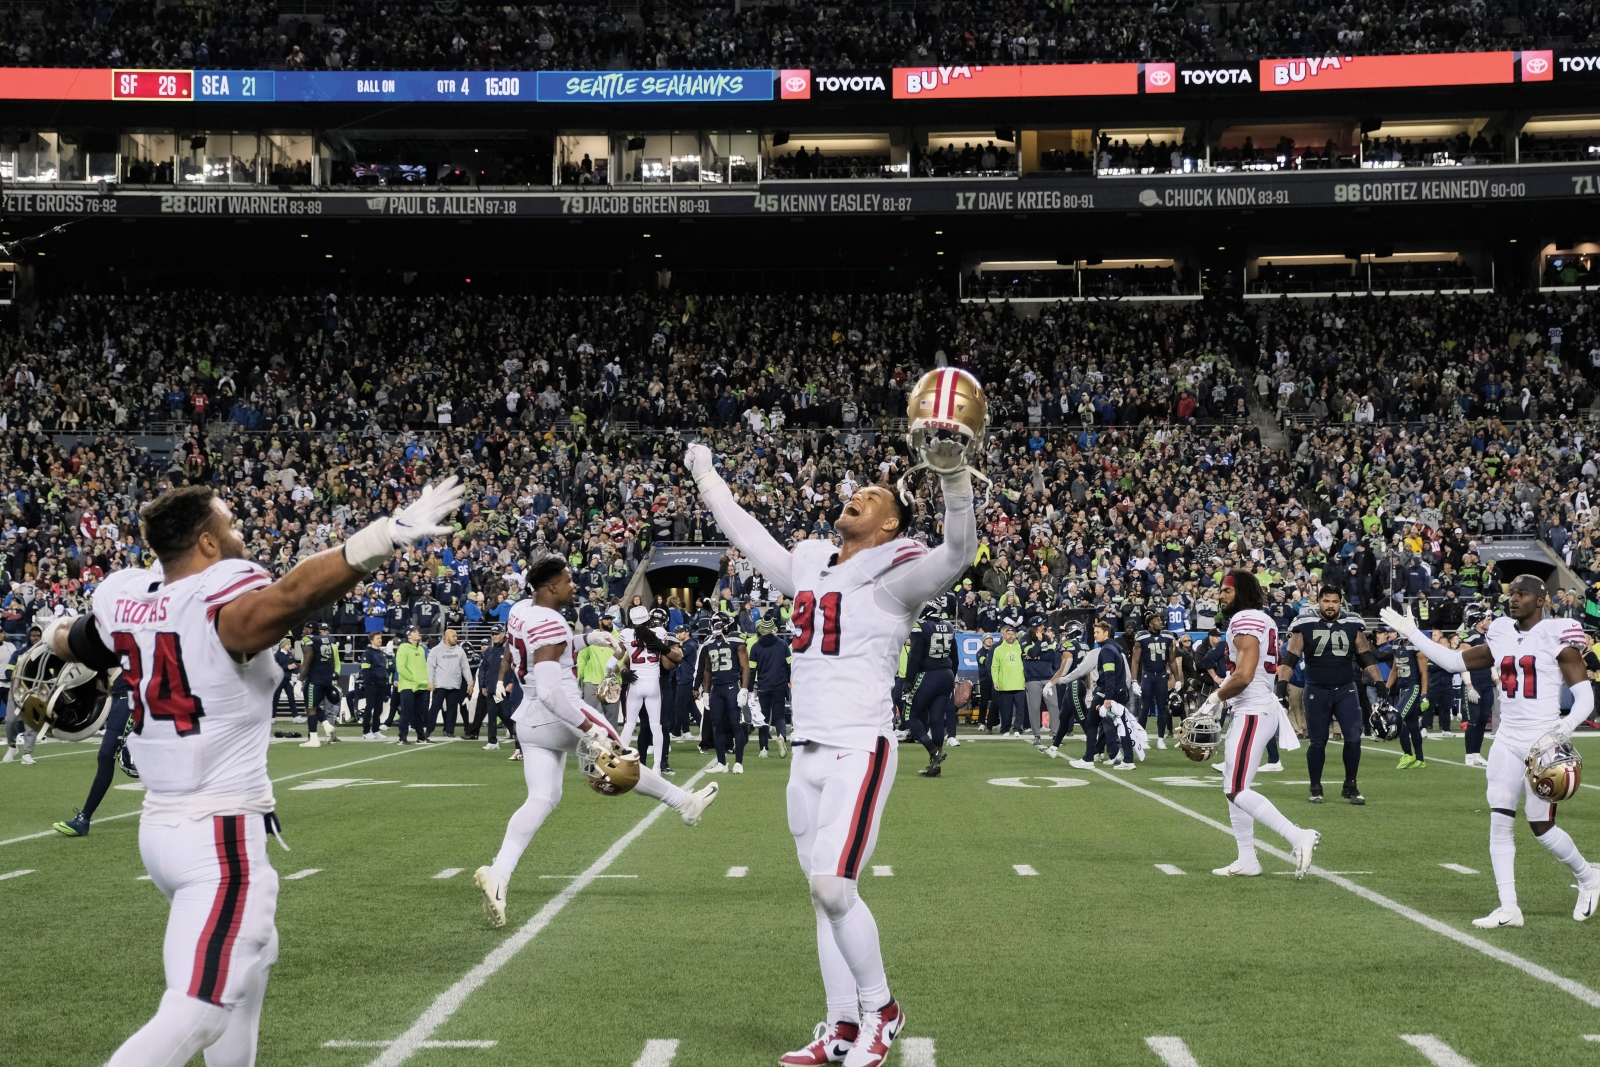 Armstead celebrates after the 49ers win against the Seattle Seahawks in the final game of the regular season on Dec. 29, 2019. With the victory, San Francisco clinched the division title and the NFC's No. 1 seed in the playoffs. (Photo by Stephen Brashear/AP Photo)